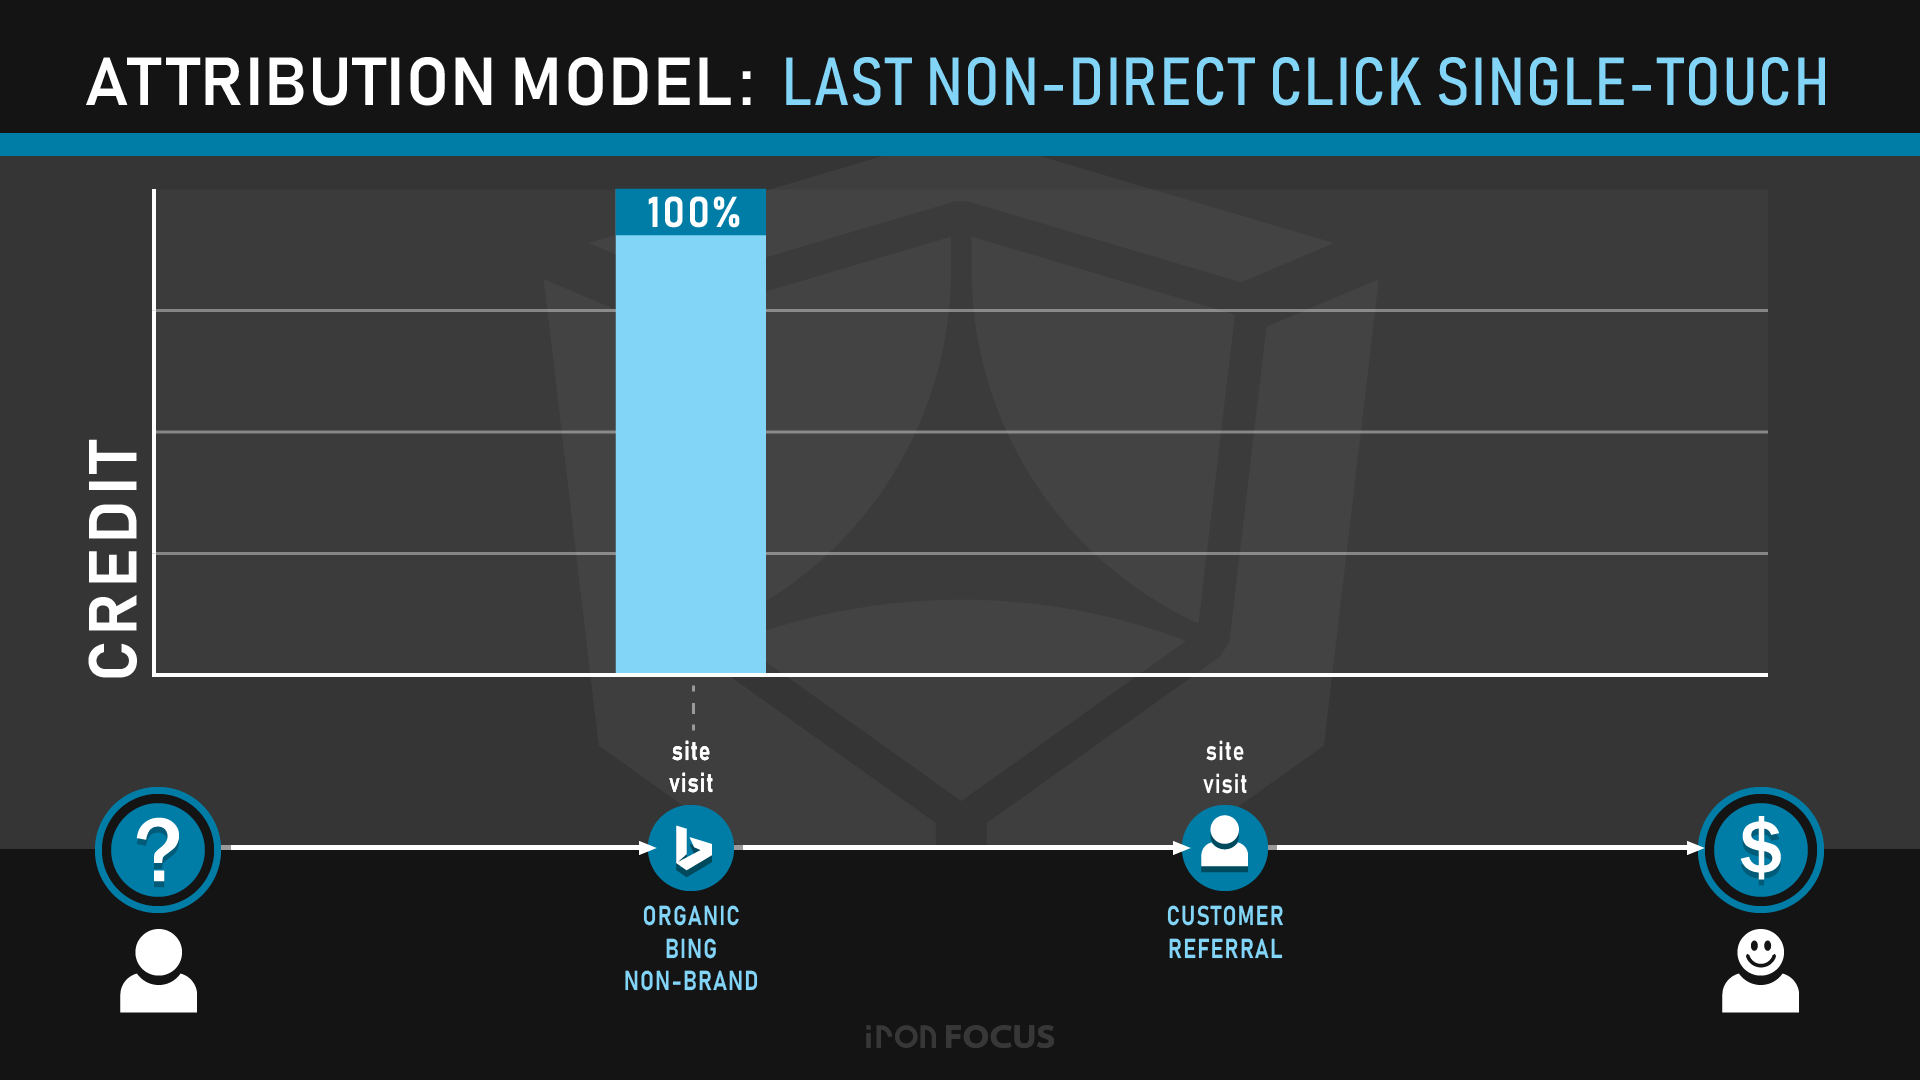 Attribution Model: Last Non-Direct Click Single-Touch